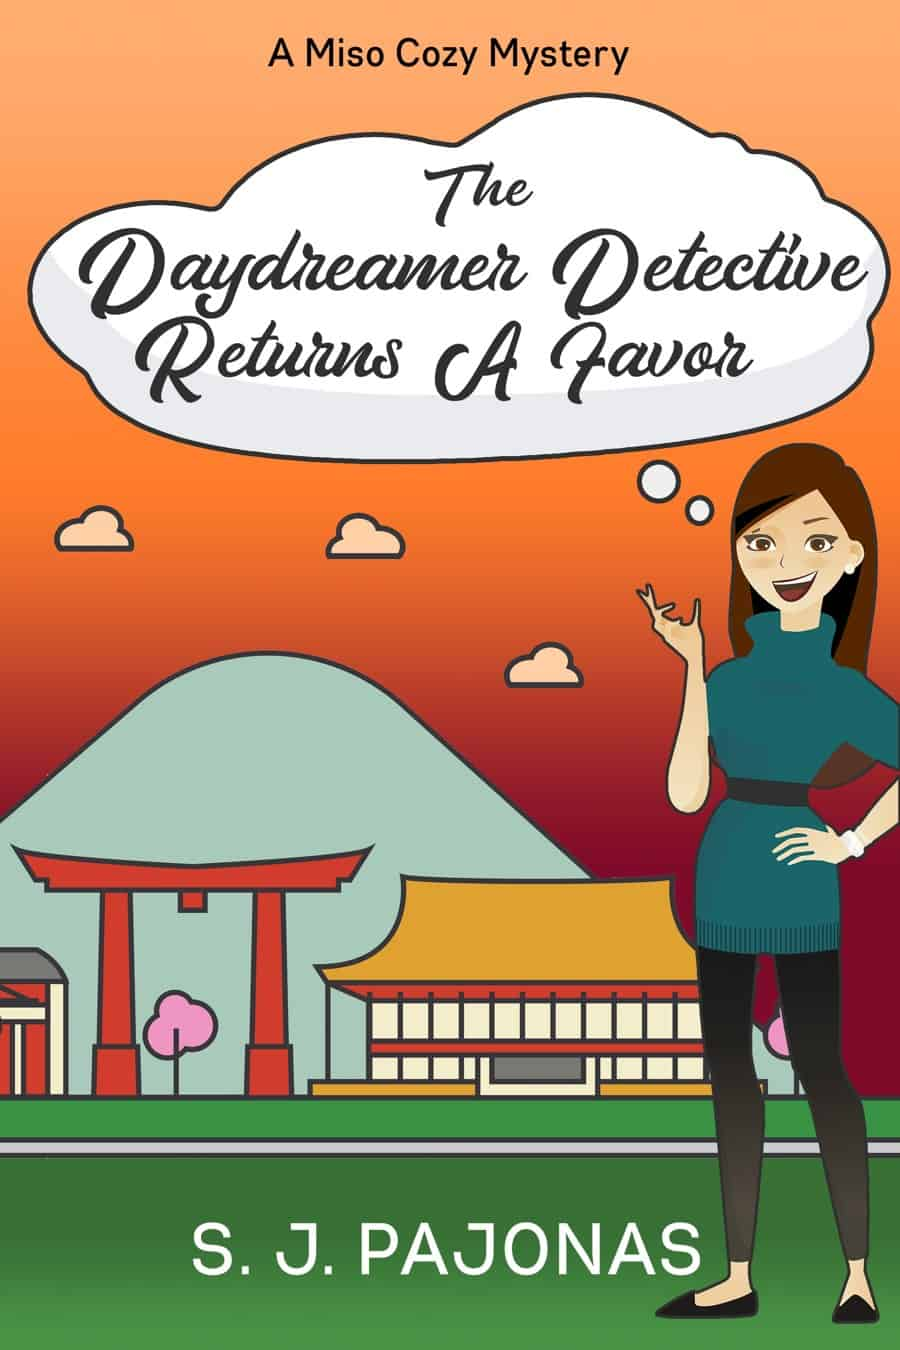 It's Release Day for THE DAYDREAMER DETECTIVE RETURNS A FAVOR! You can now purchase this cozy mystery on Amazon, Nook, Apple Books, Kobo, and Google Play.